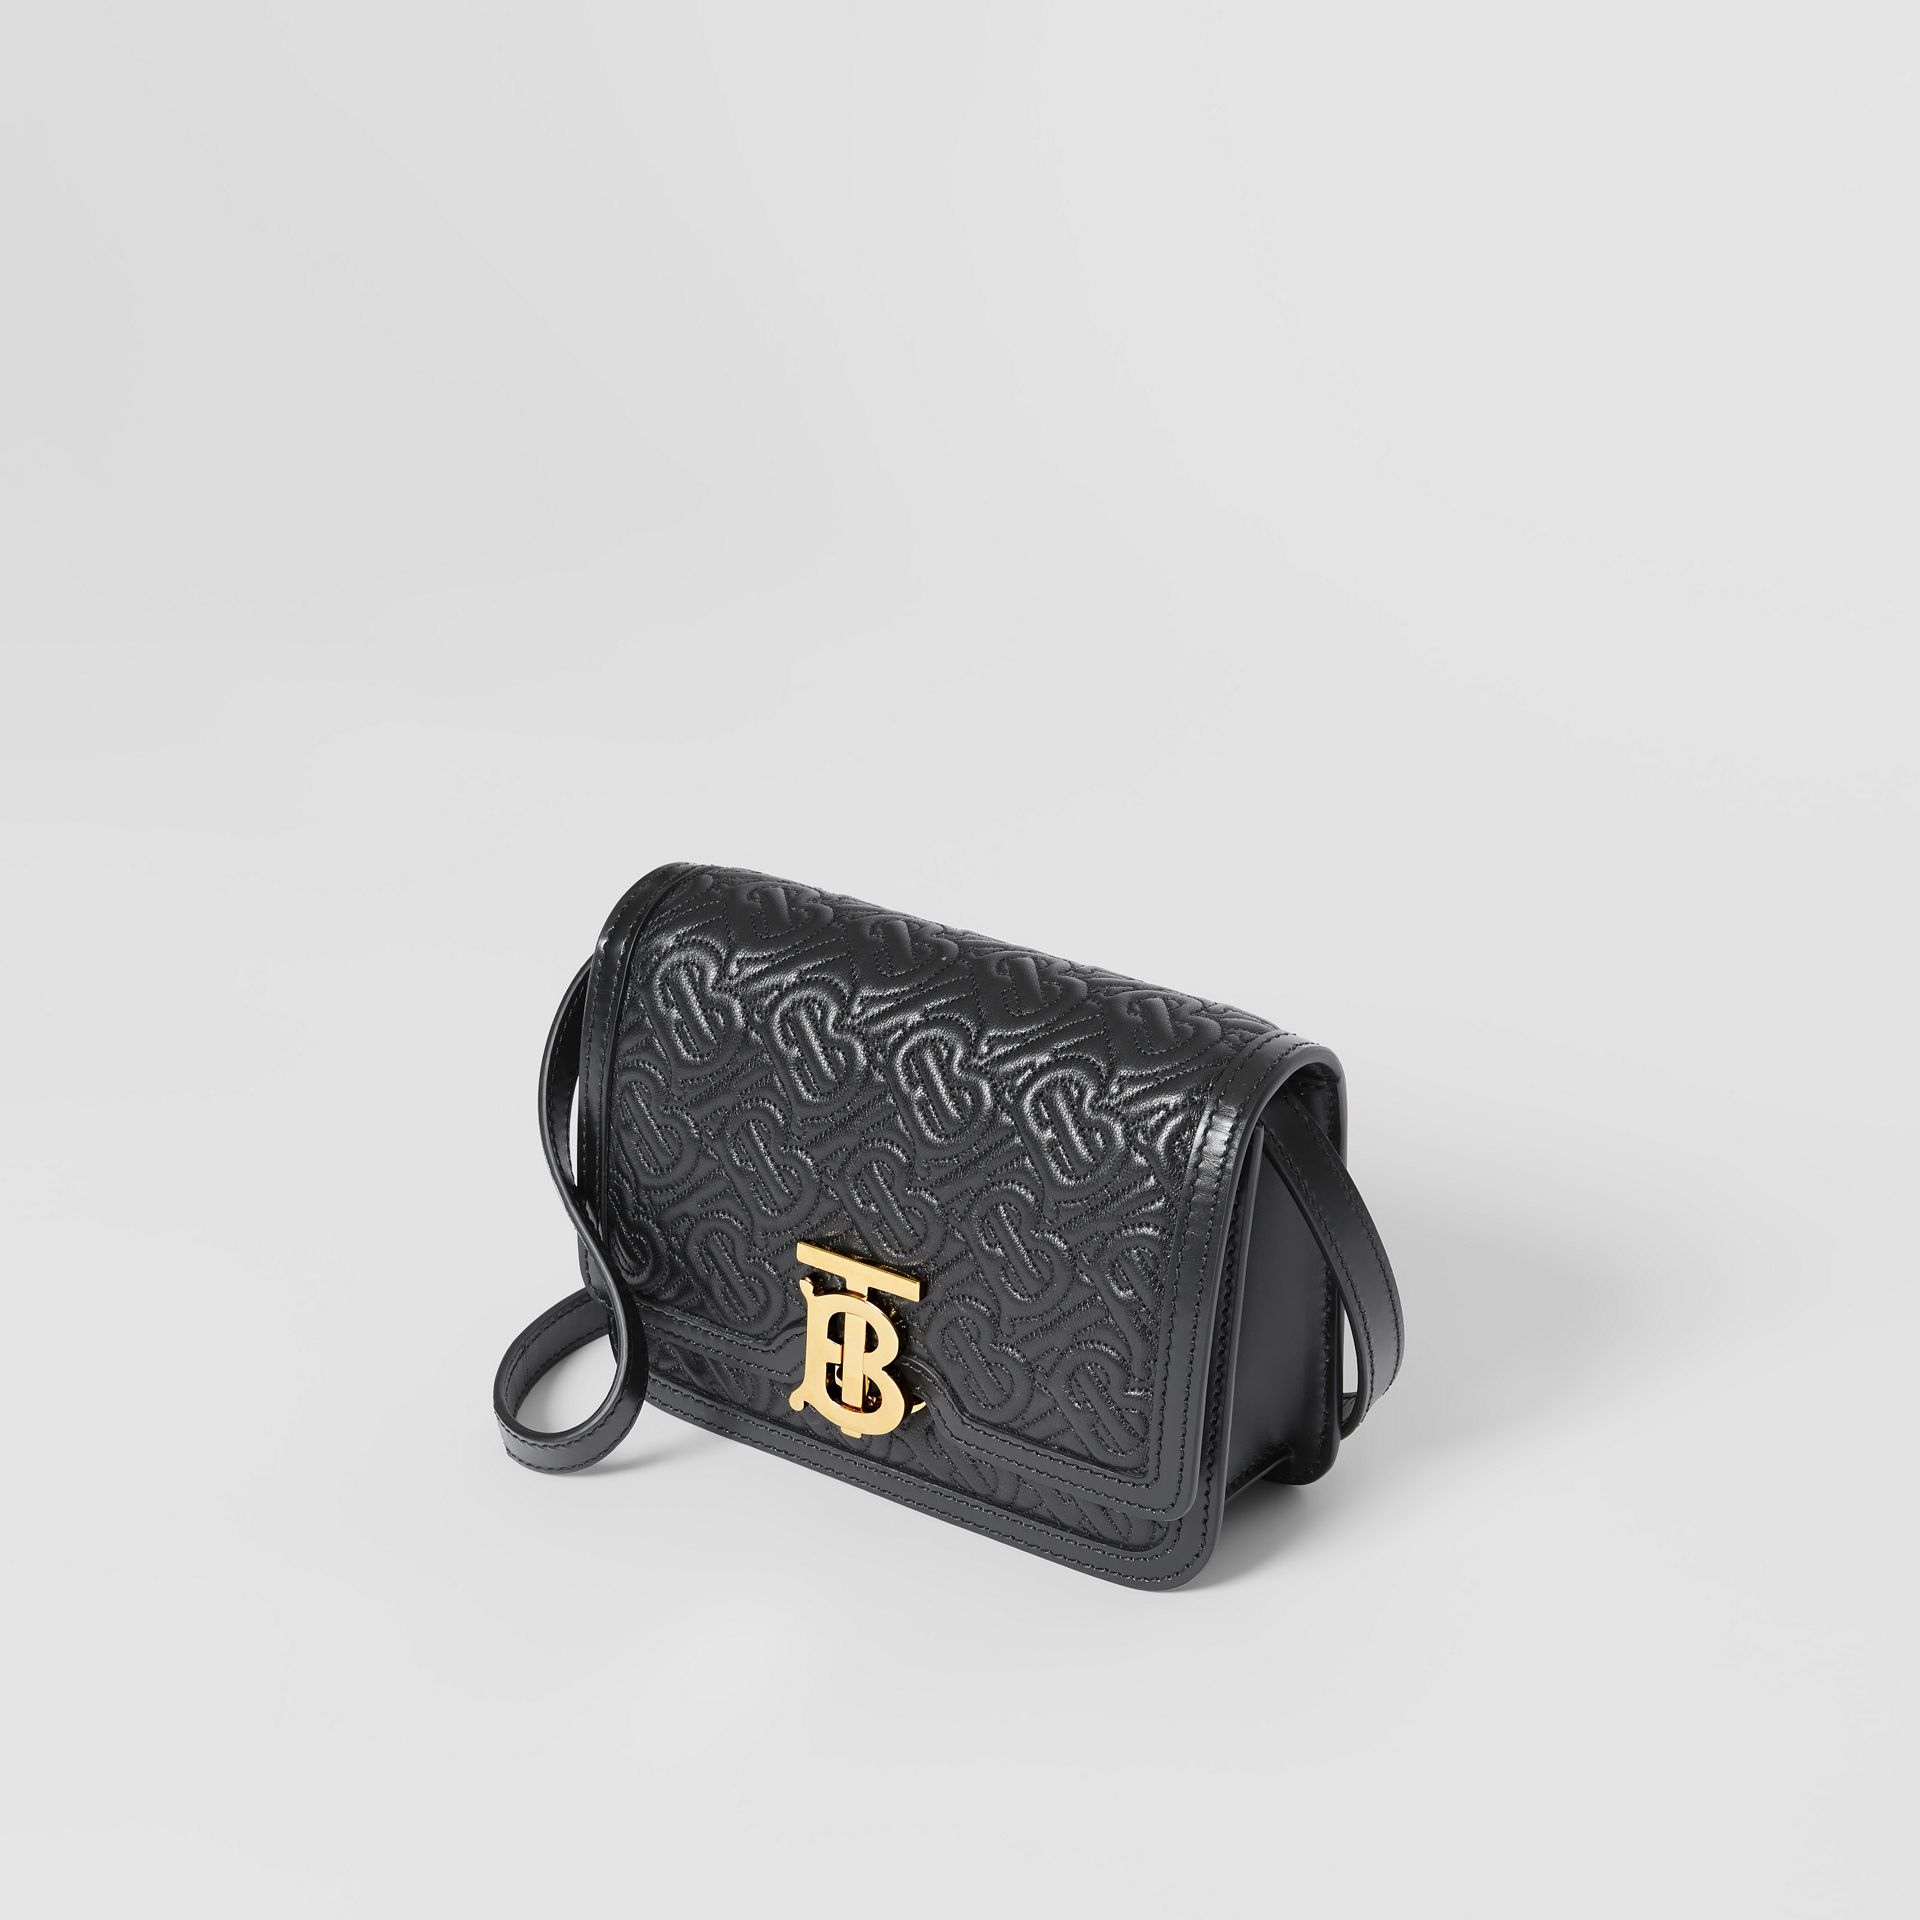 Mini Quilted Monogram Lambskin TB Bag in Black - Women | Burberry - gallery image 2